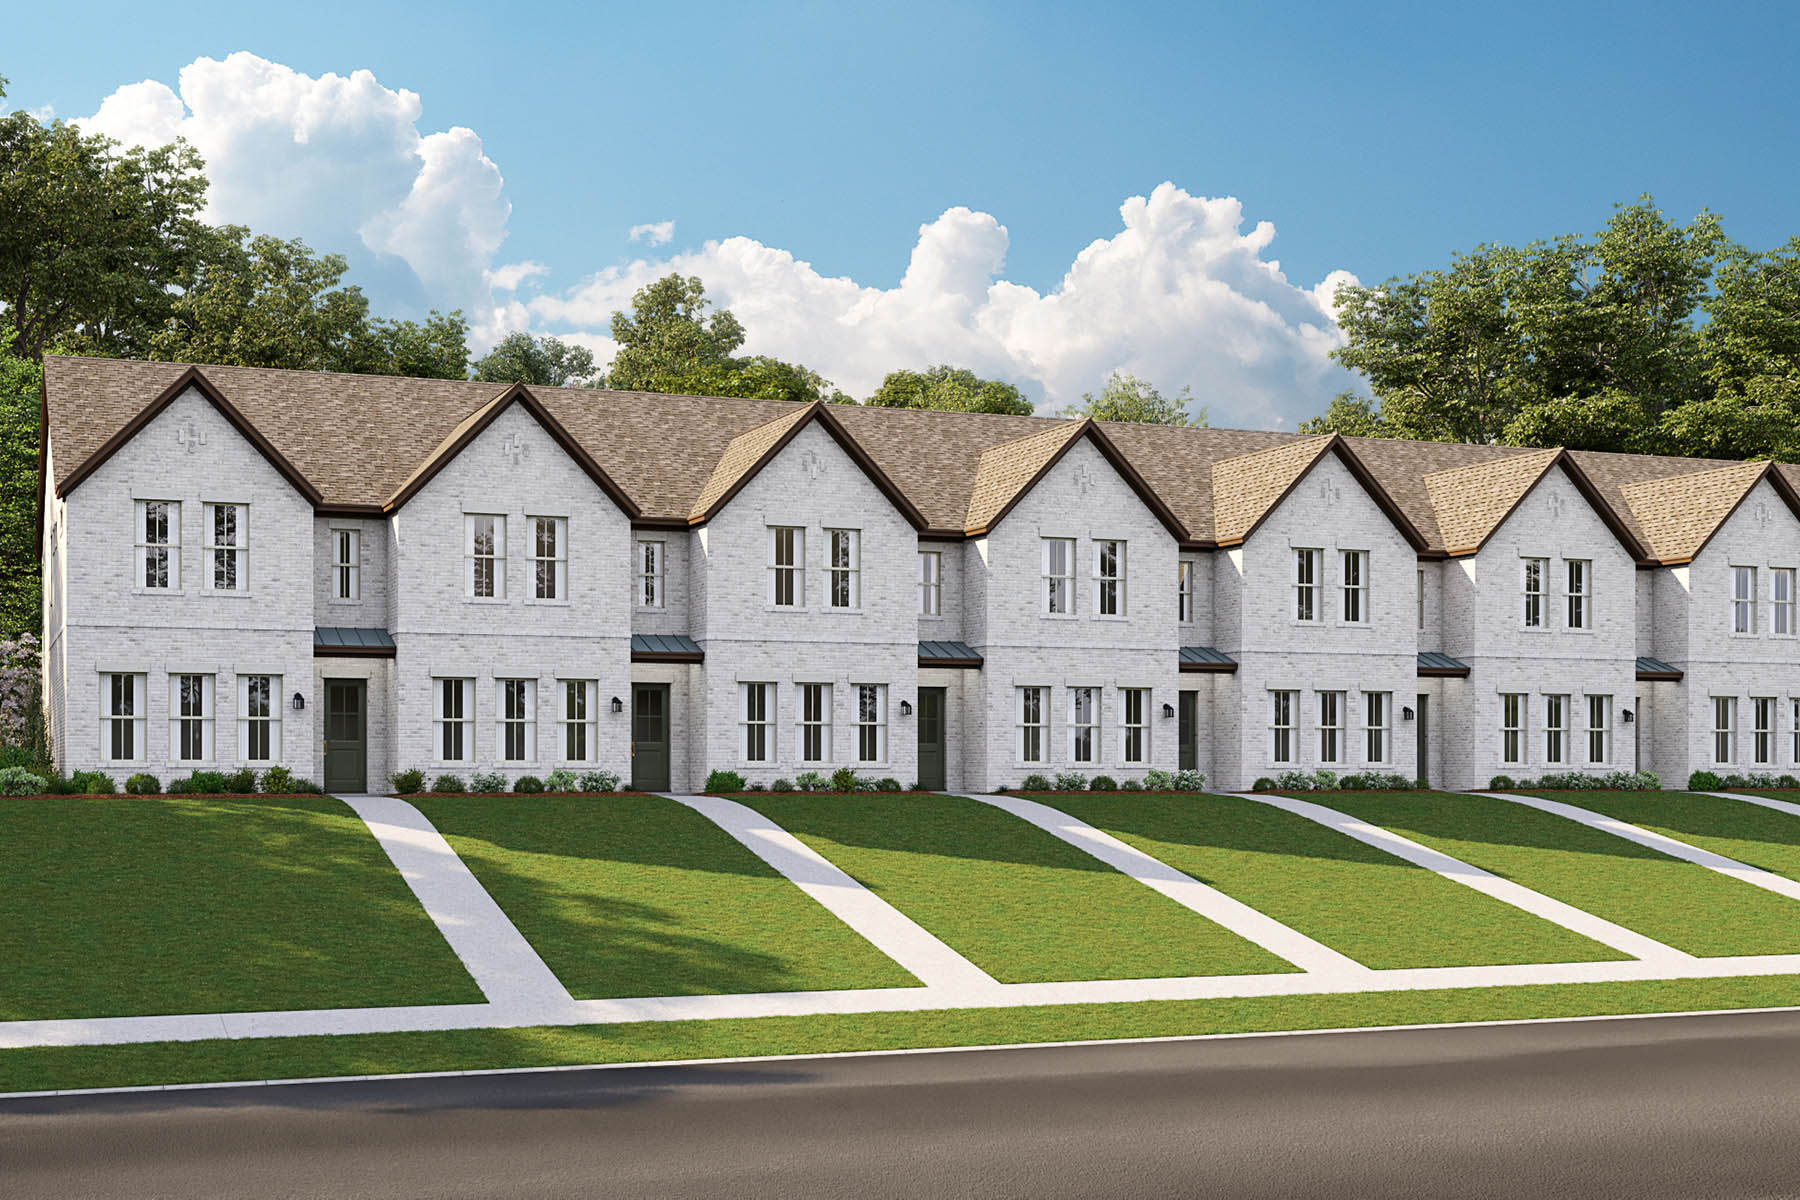 La Rosa Plan TownHomes at Windhaven Crossing in Lewisville Texas by Mattamy Homes